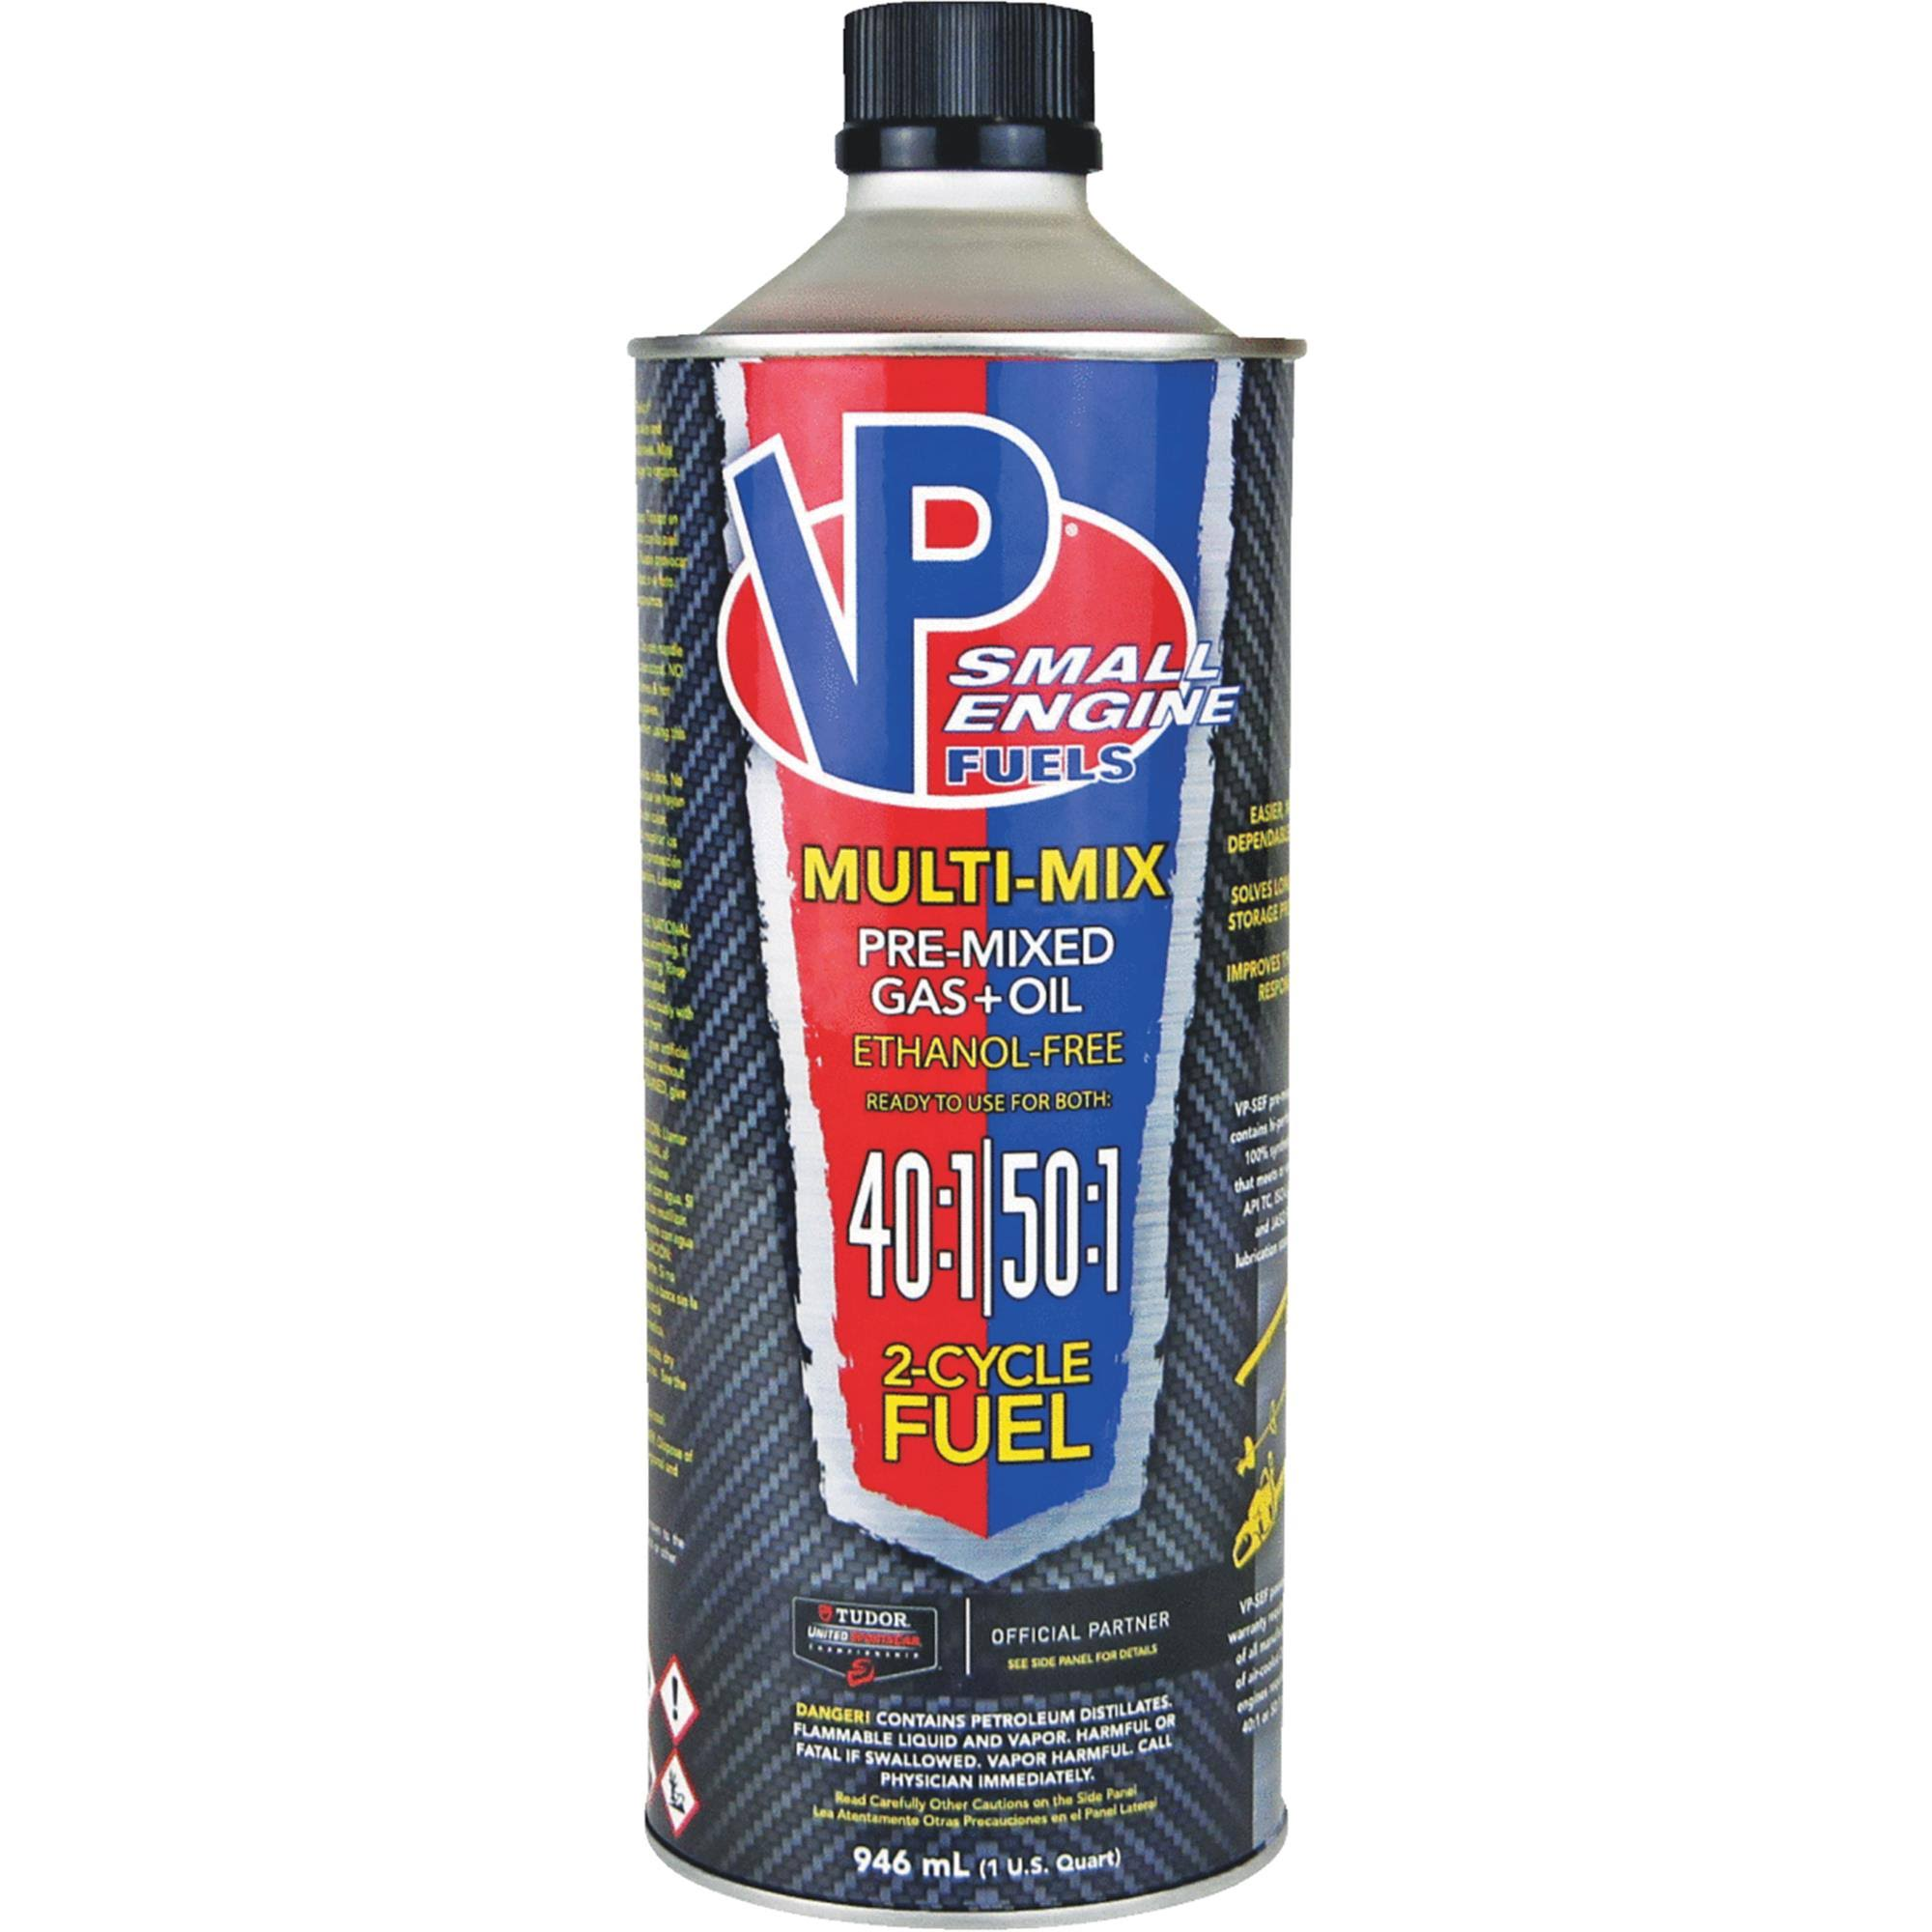 VP Small Engine Fuels Ethanol-Free Multi-Mix Gas & Oil Mix - 32oz